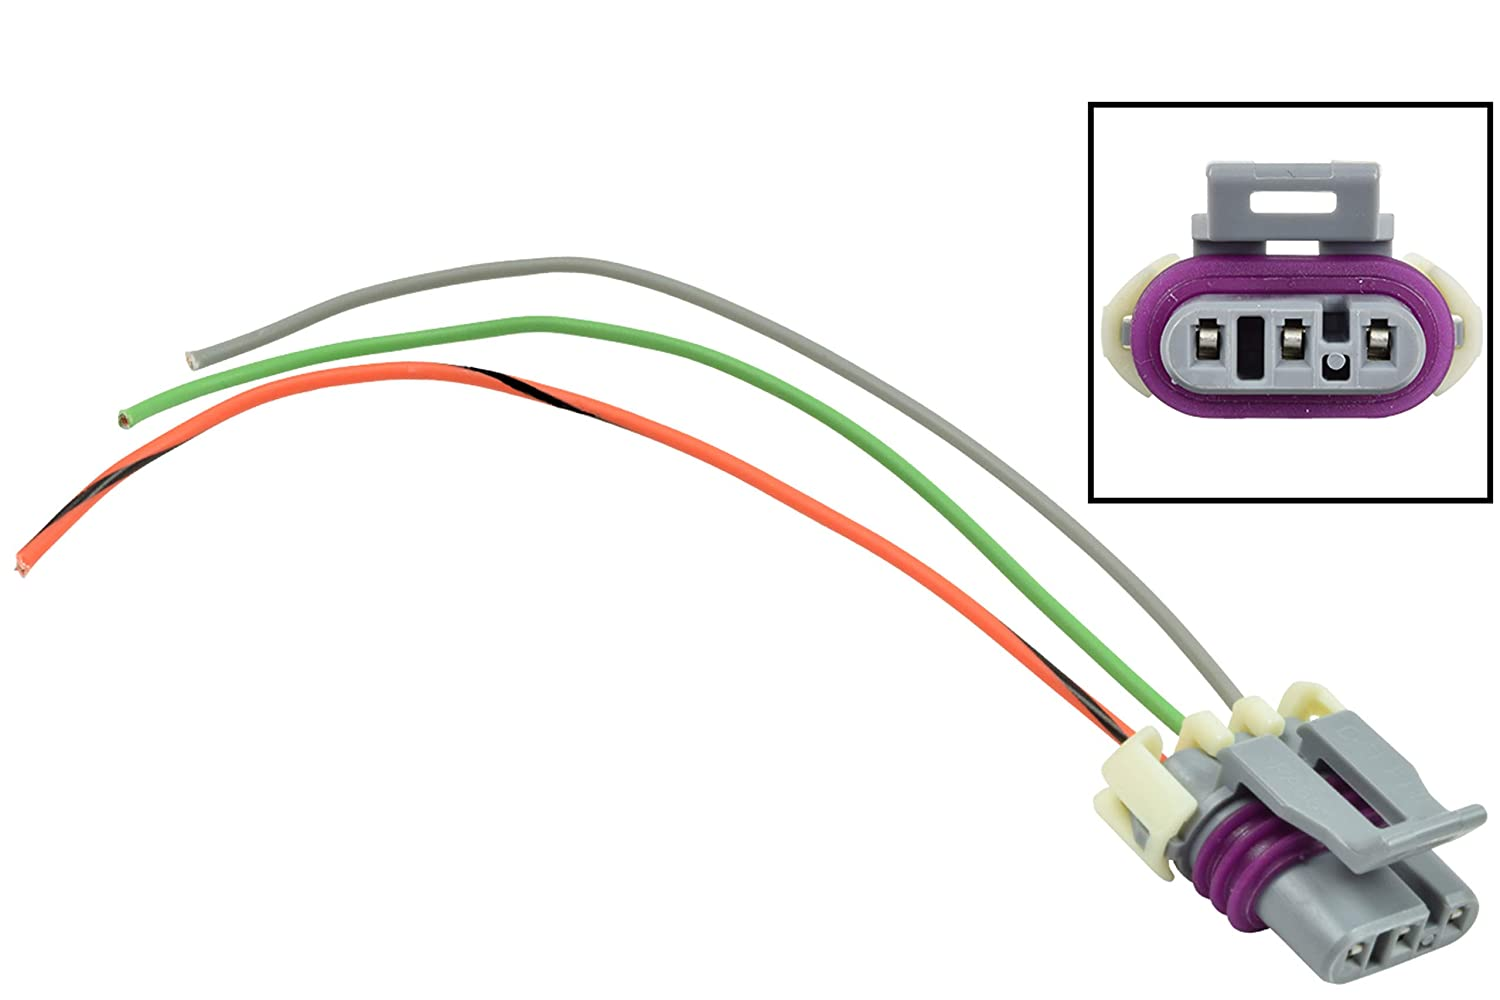 GM MAP Wire Pigtail Connector for Manifold Absolute Pressure ... Why Pigtail Wiring on pigtail socket, pigtail harness, pigtail fuses,